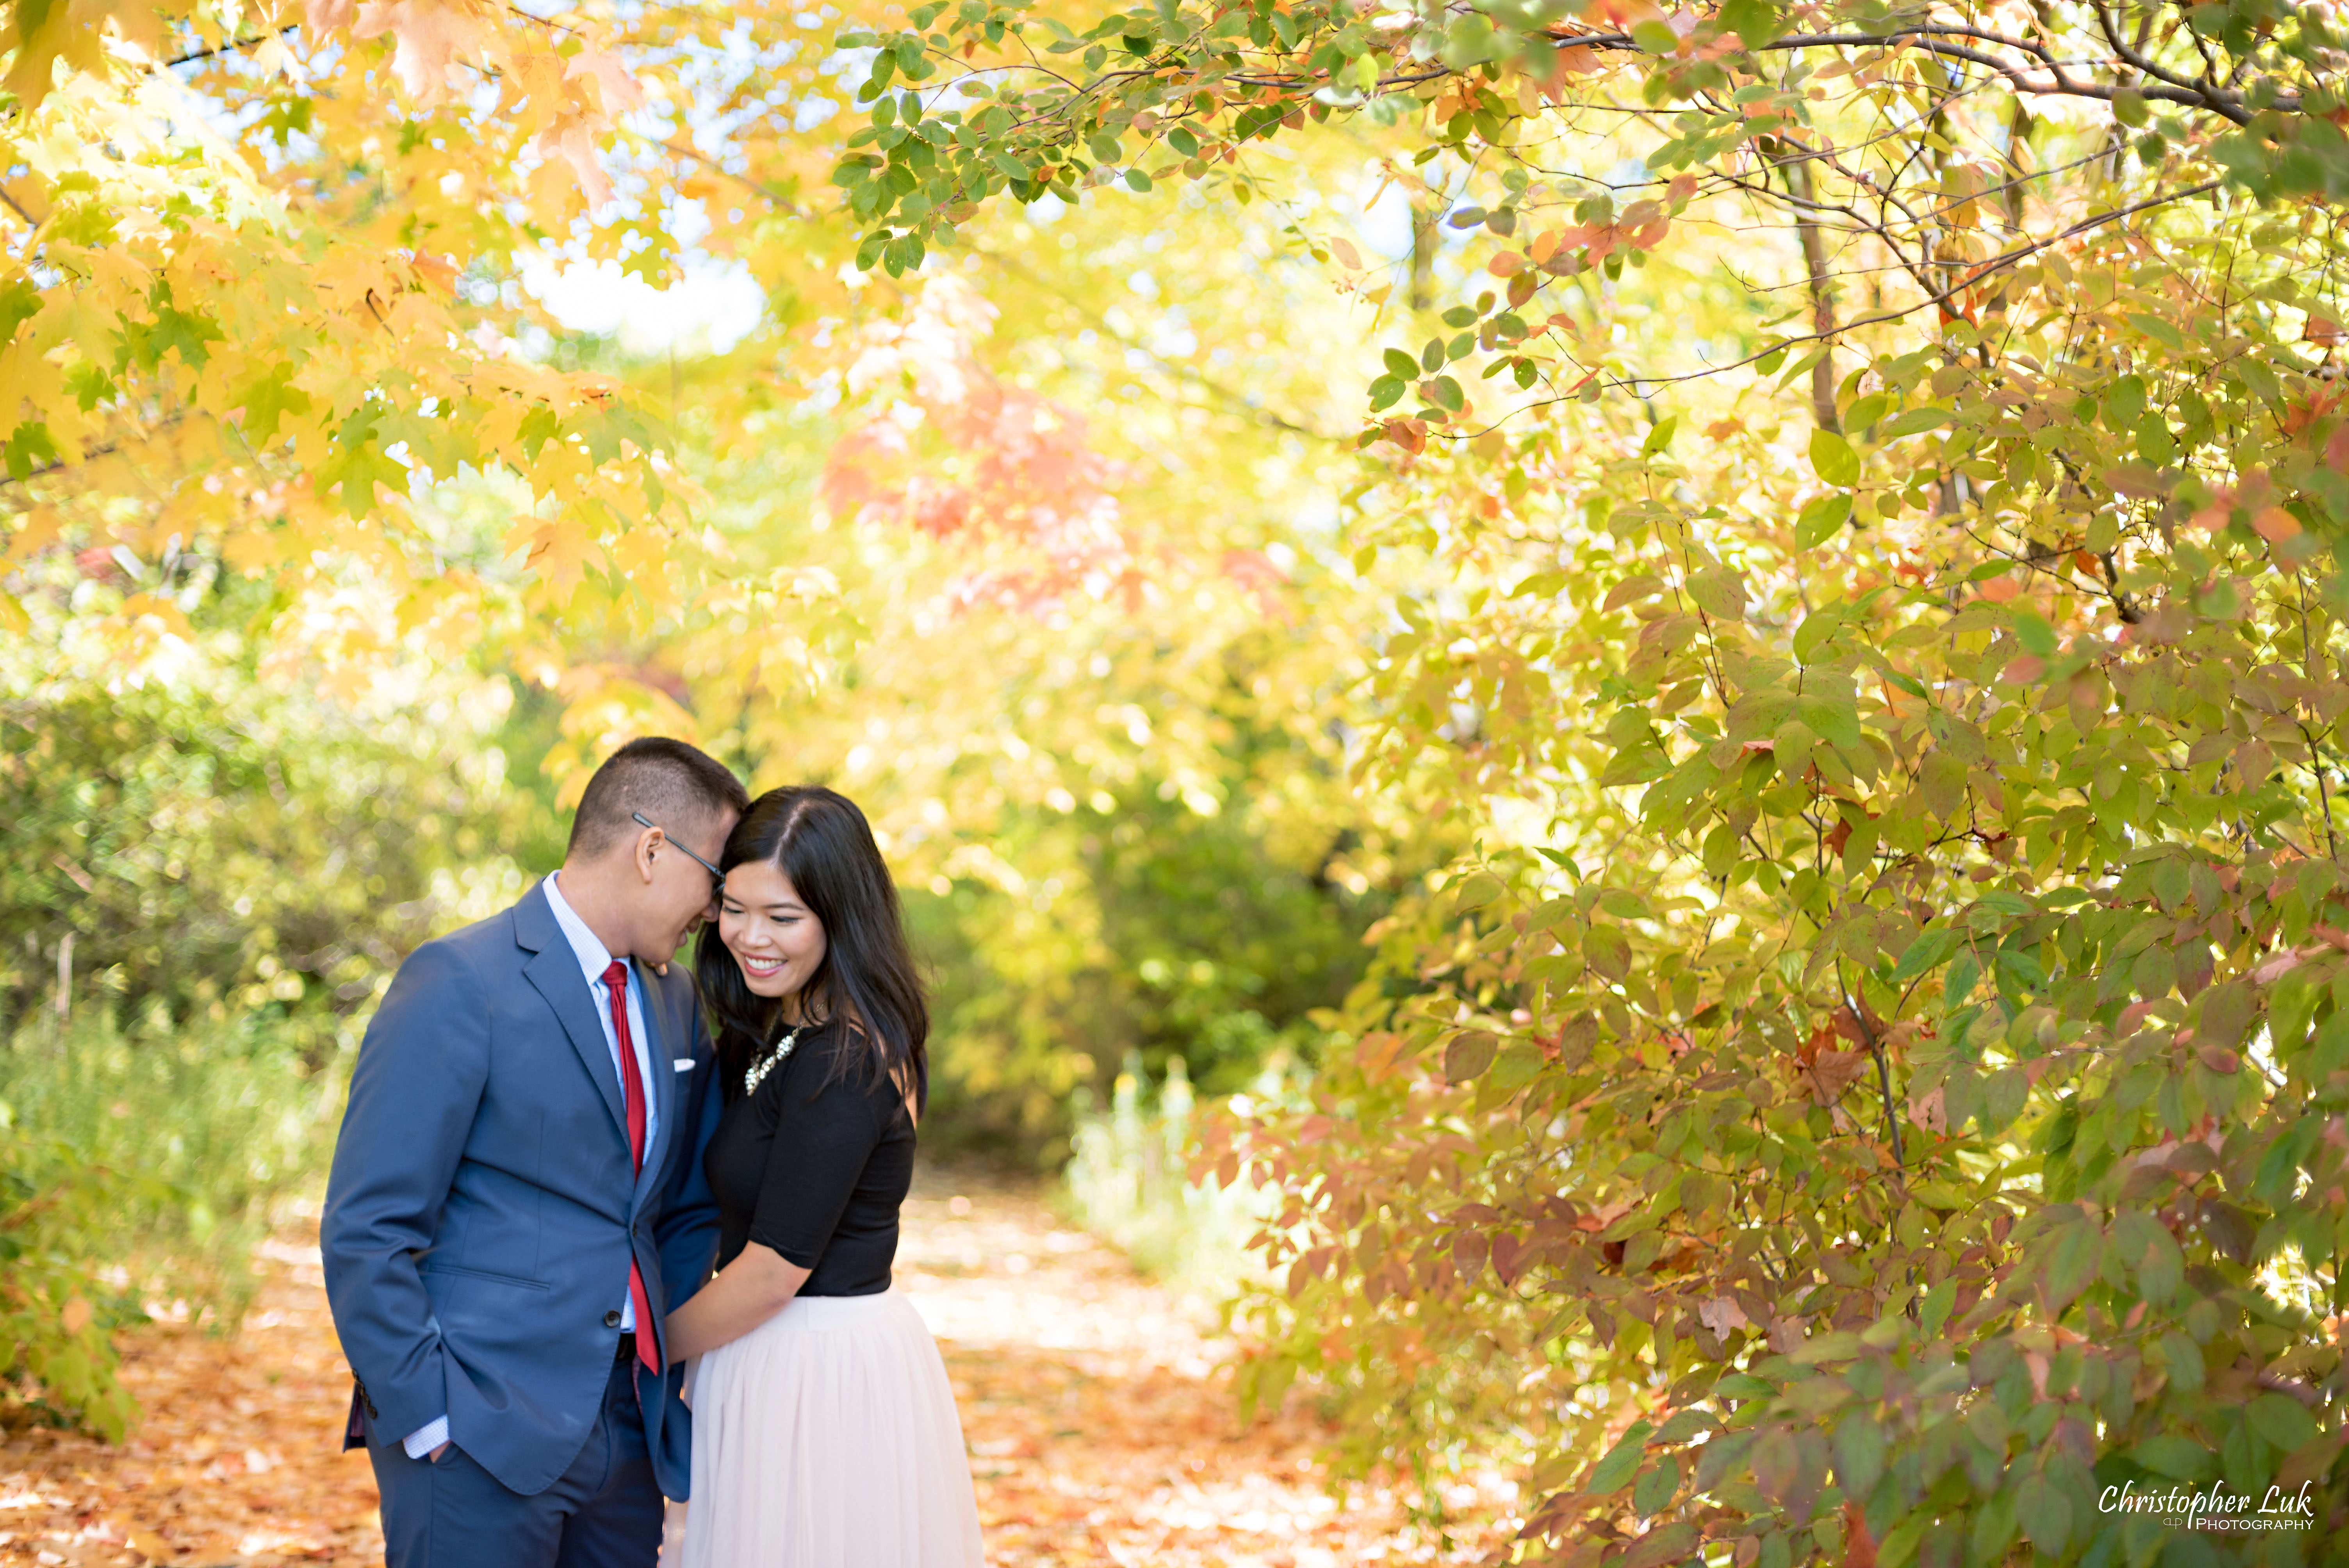 Agnes and Nathaniel's Autumn Engagement PreWedding Session – The Doctor's House / Main Street Kleinburg / Conservation Woods Park – Toronto Wedding Photographer